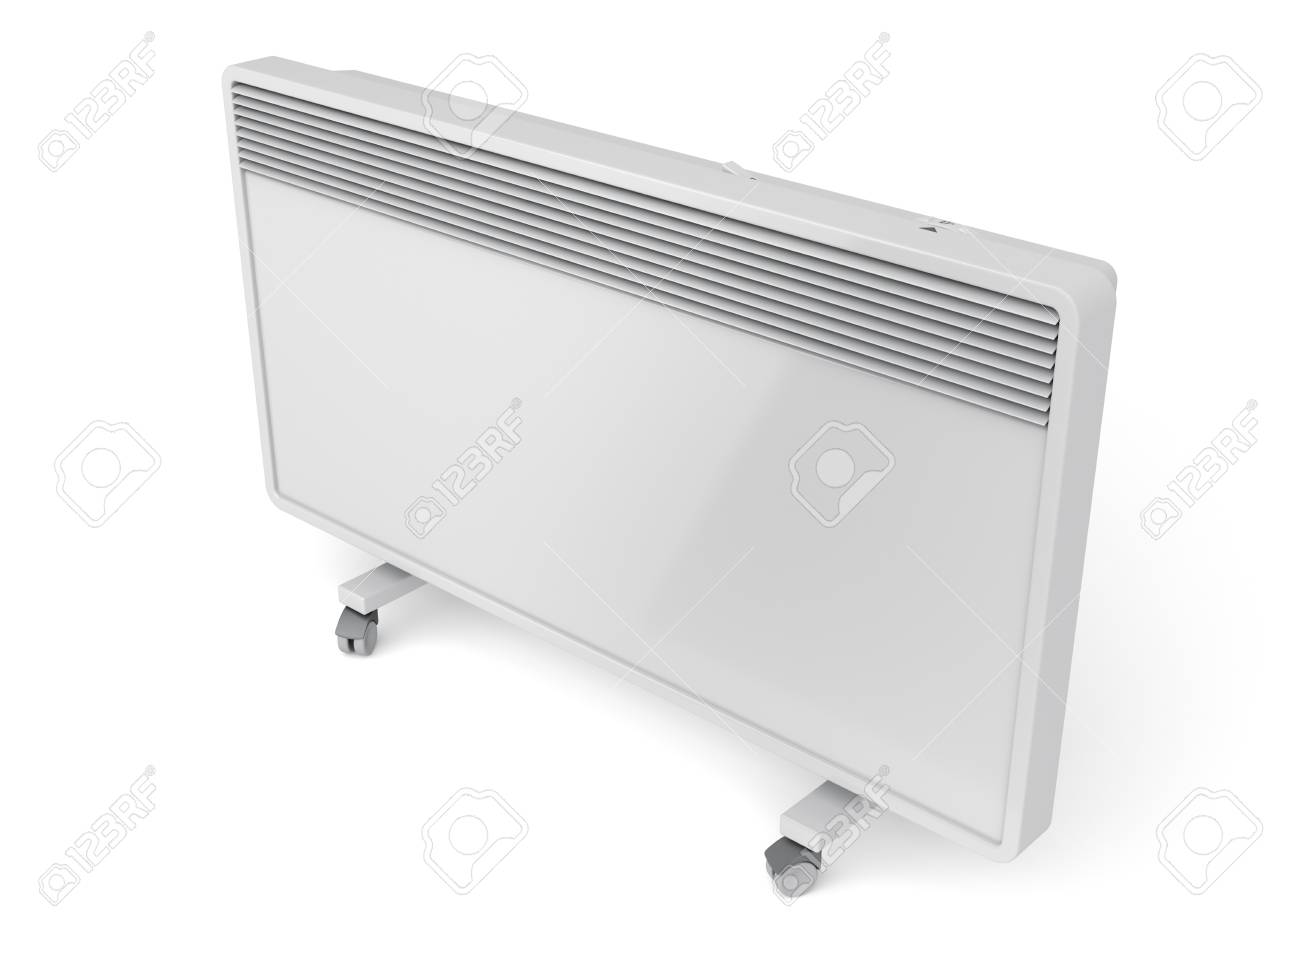 Mobile Convection Heater On White Background Stock Photo Picture 1300x975